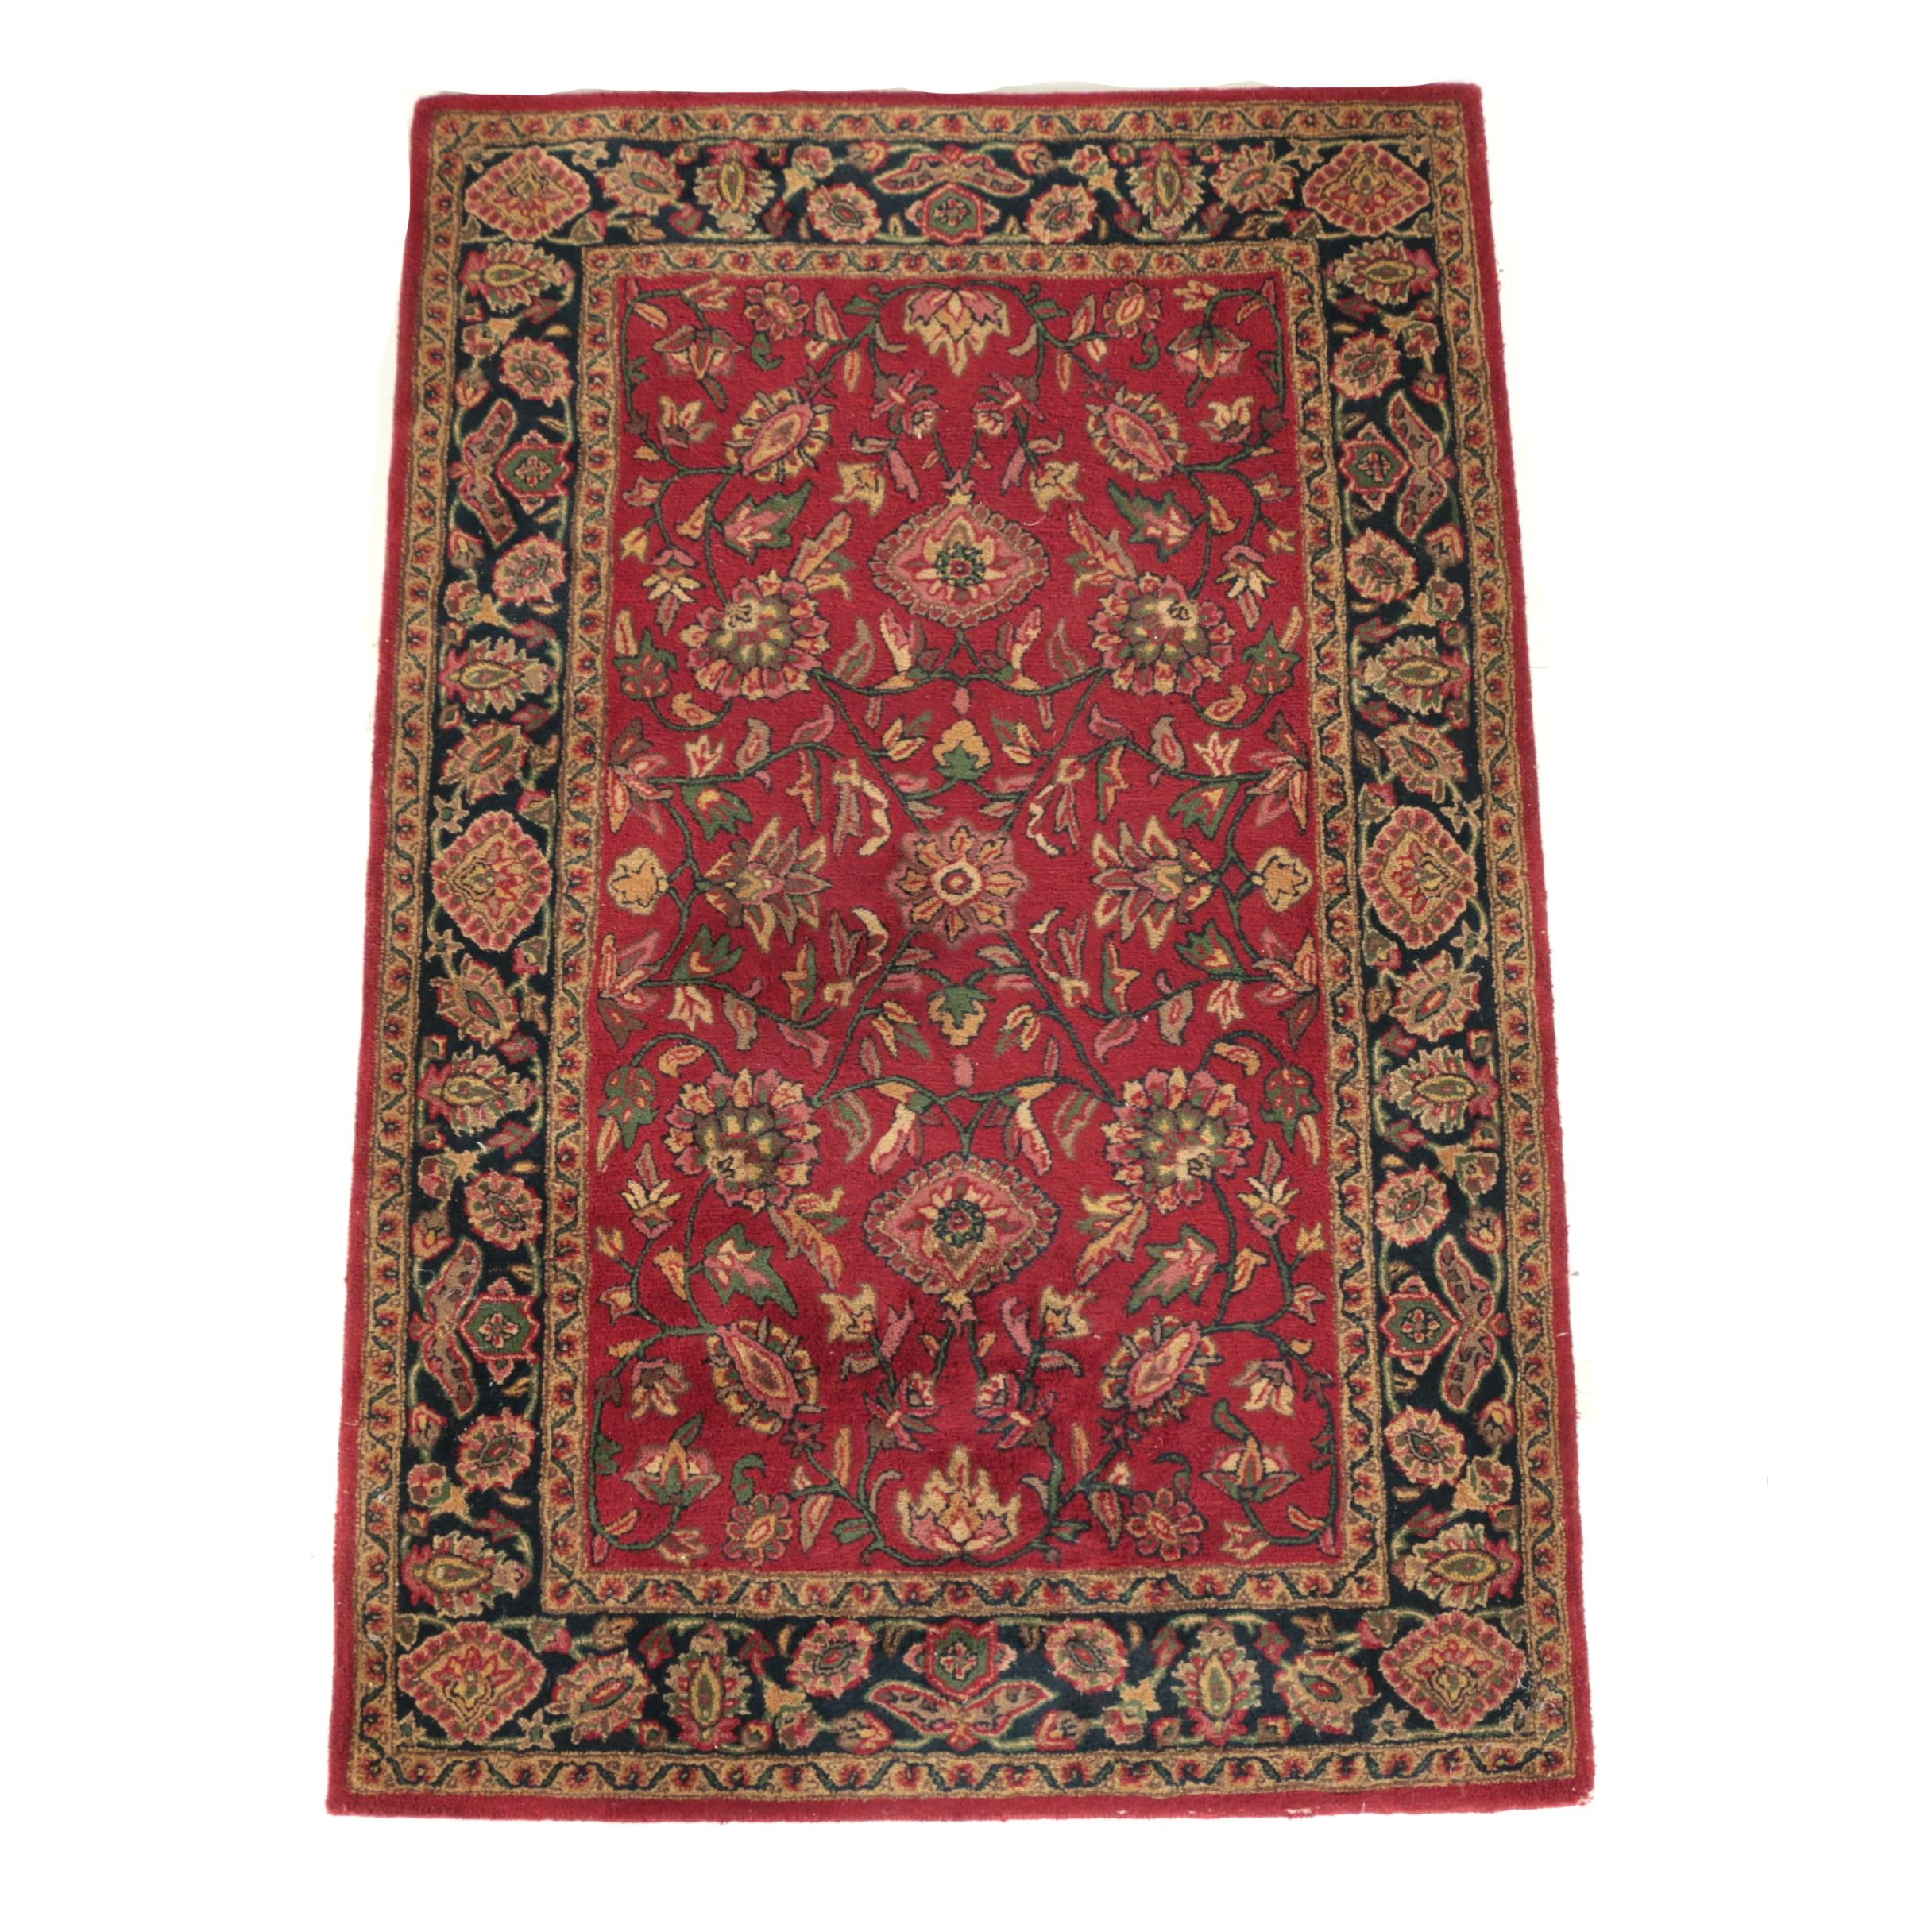 "Hand-Tufted Indian ""Palace Kashan"" Wool Area Rug"